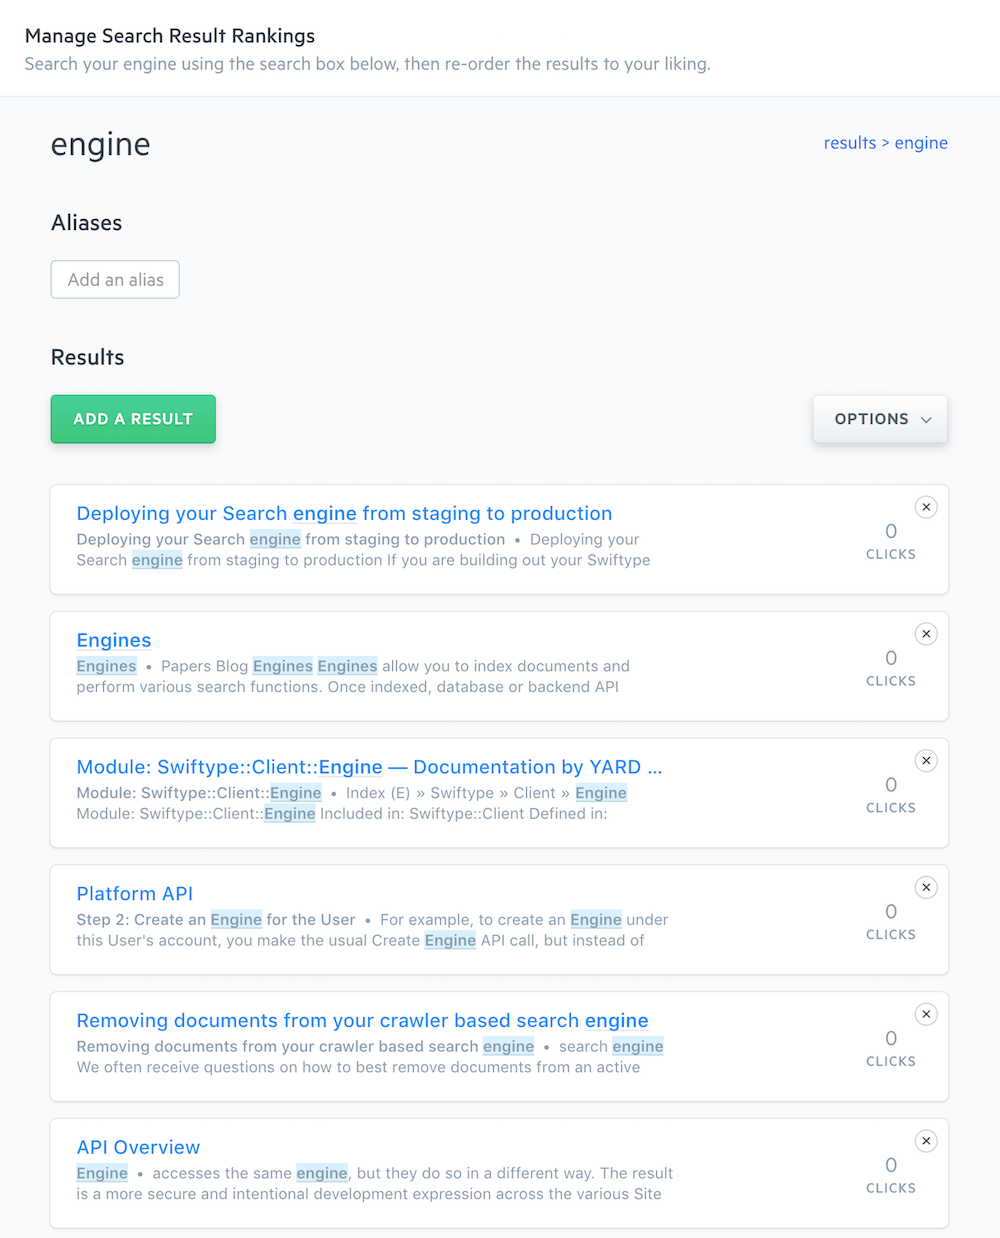 A list of organic search results for the engine query.